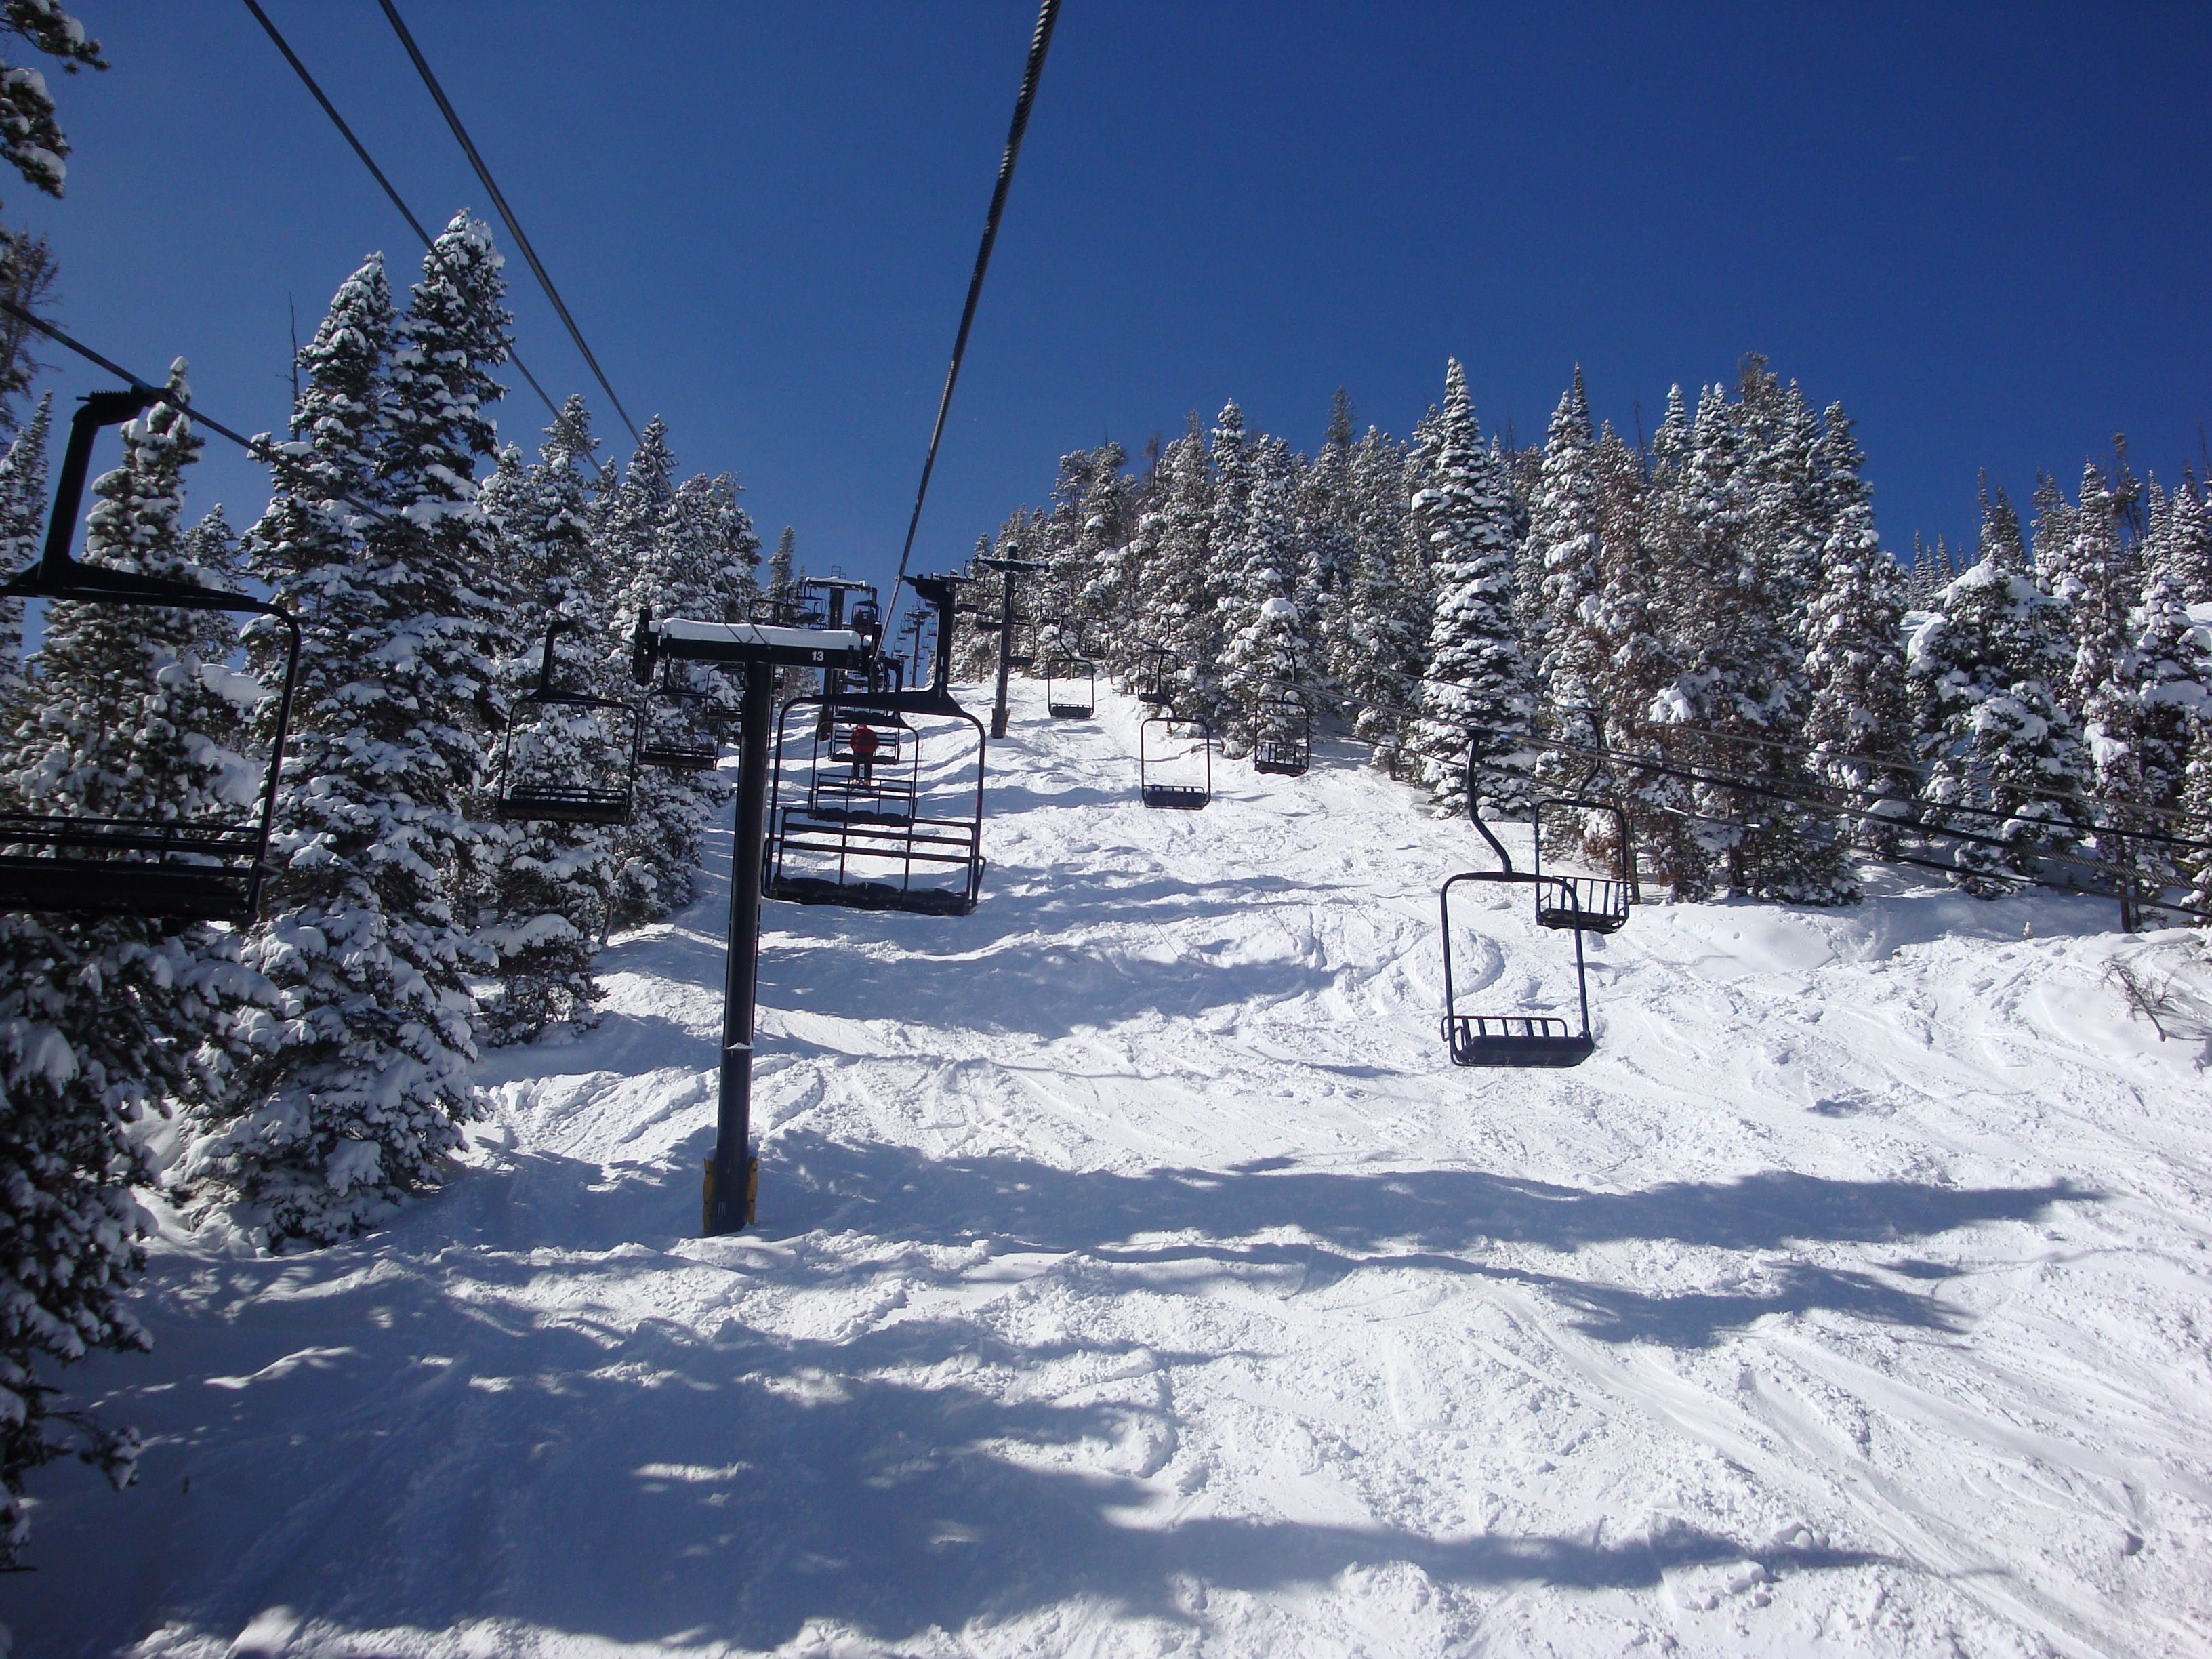 eldora ski area is just 30 minutes from boulder! no i-70 traffic and